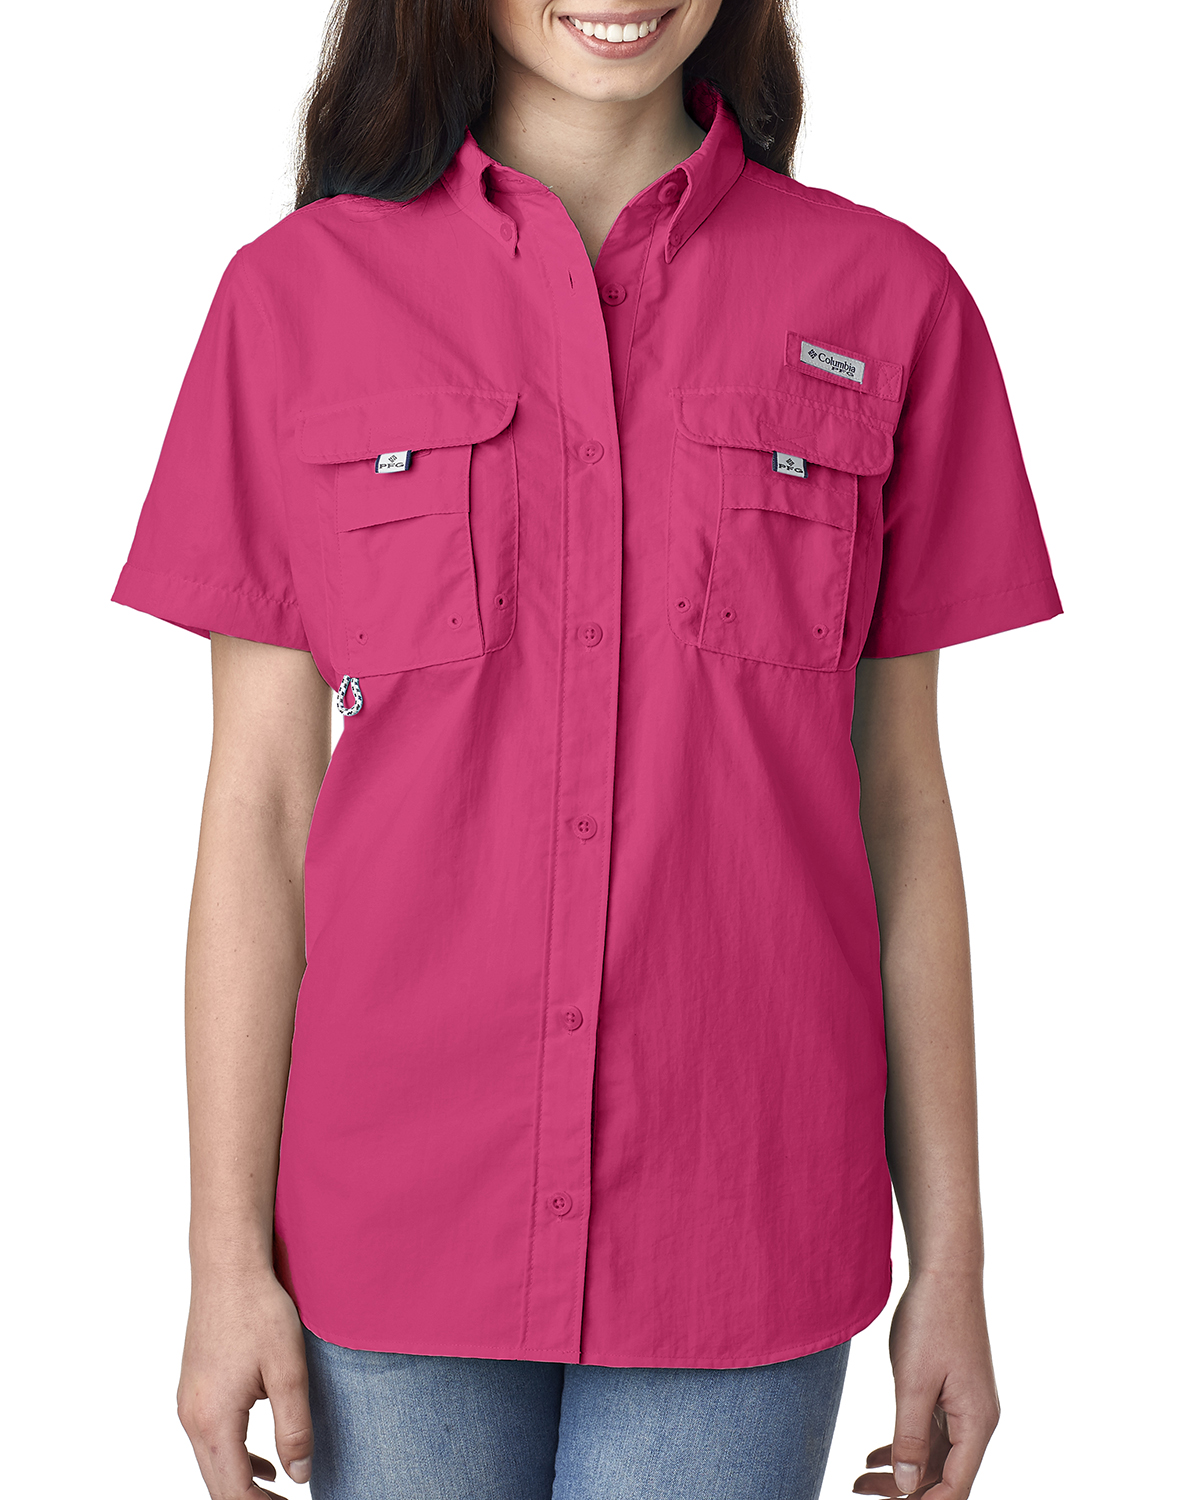 Columbia 7313 - Ladies' Bahama™ Short-Sleeve Shirt